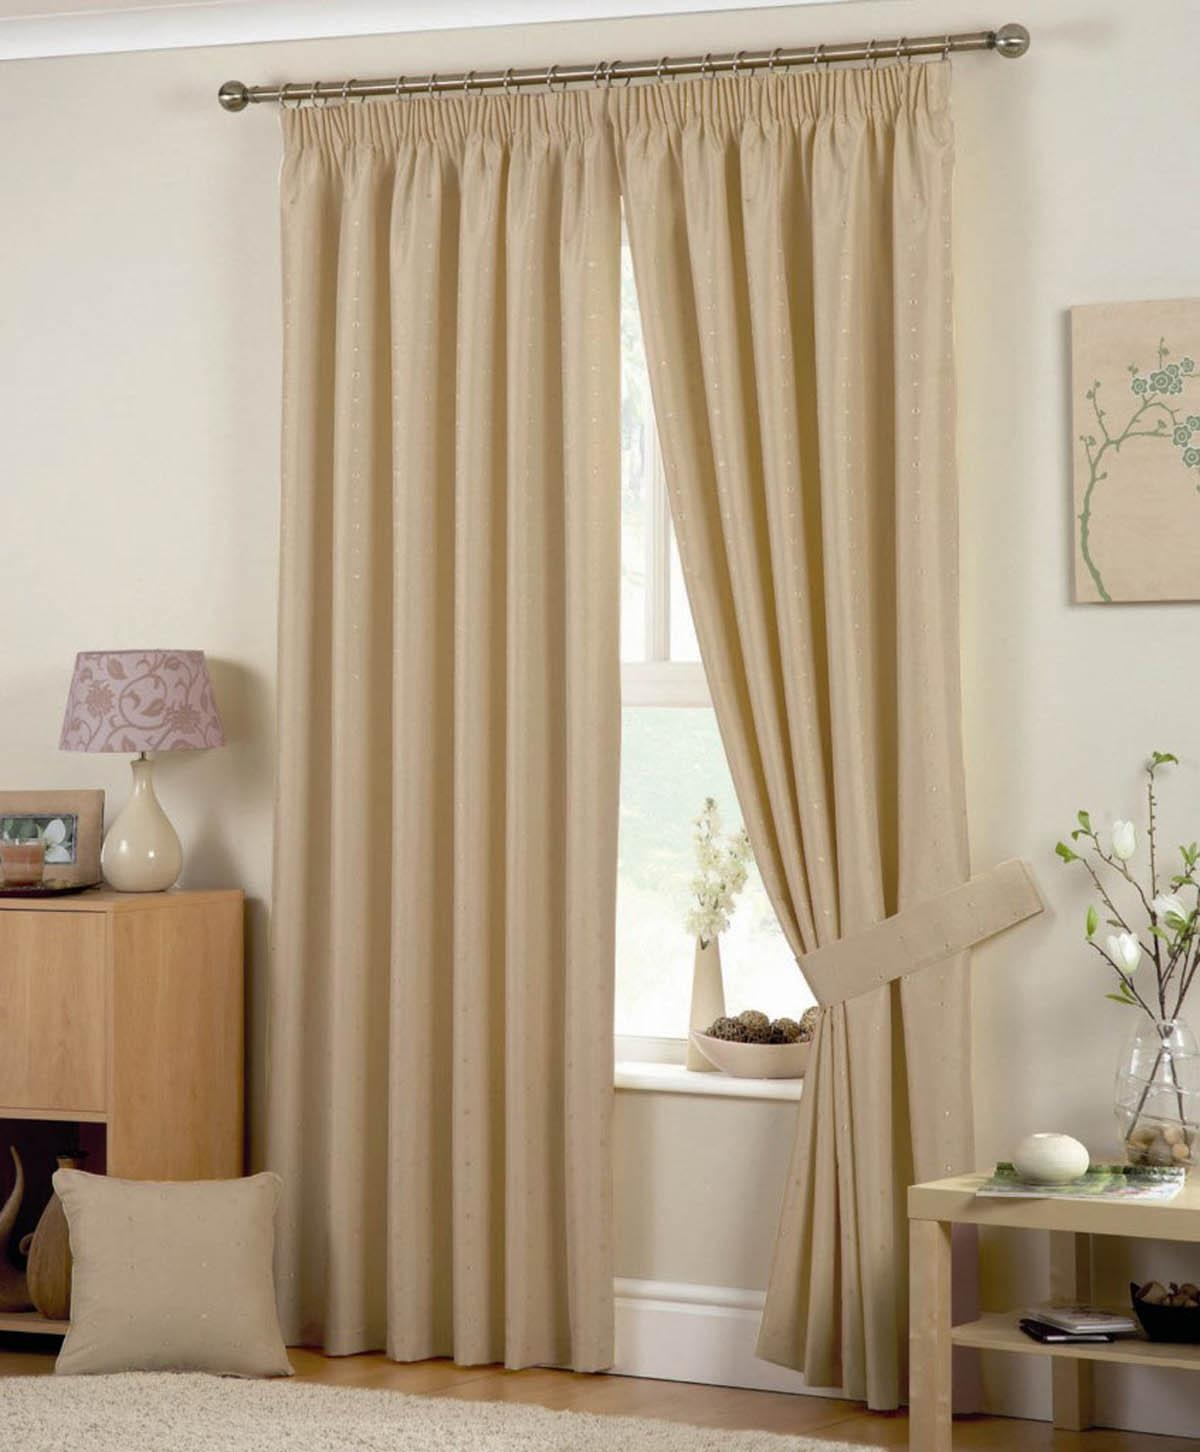 90 54 Curtains View Curtains Online Now Terrys Fabrics Pertaining To Short Drop Ready Made Curtains (View 8 of 15)